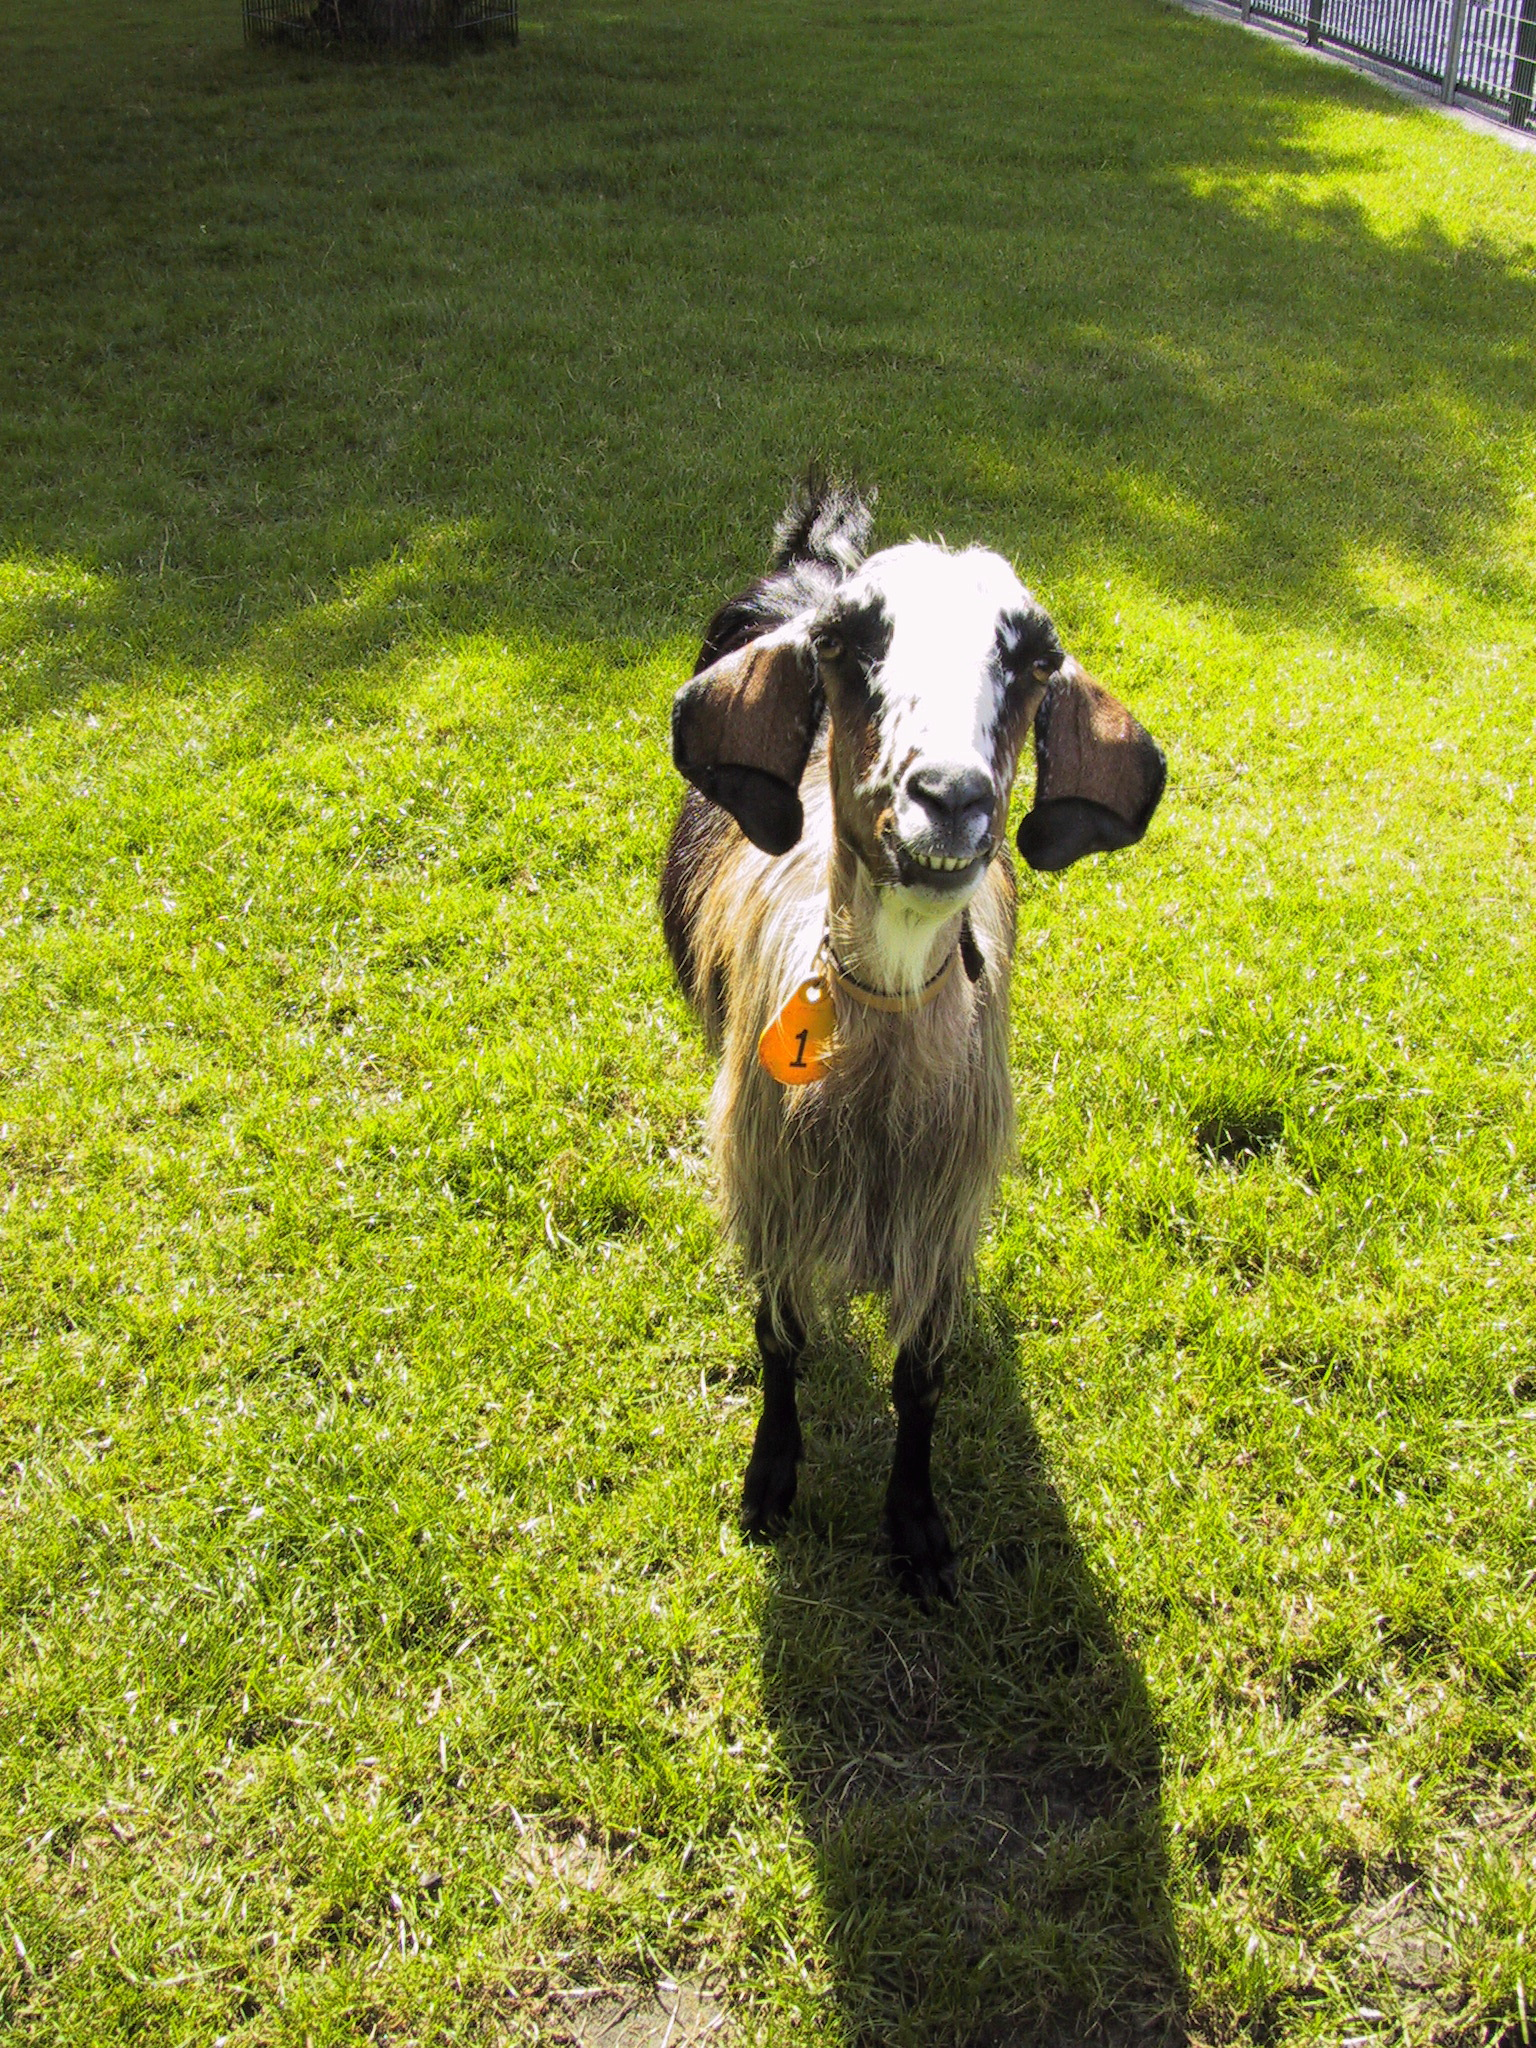 This is a picture of a goat. I like goats.